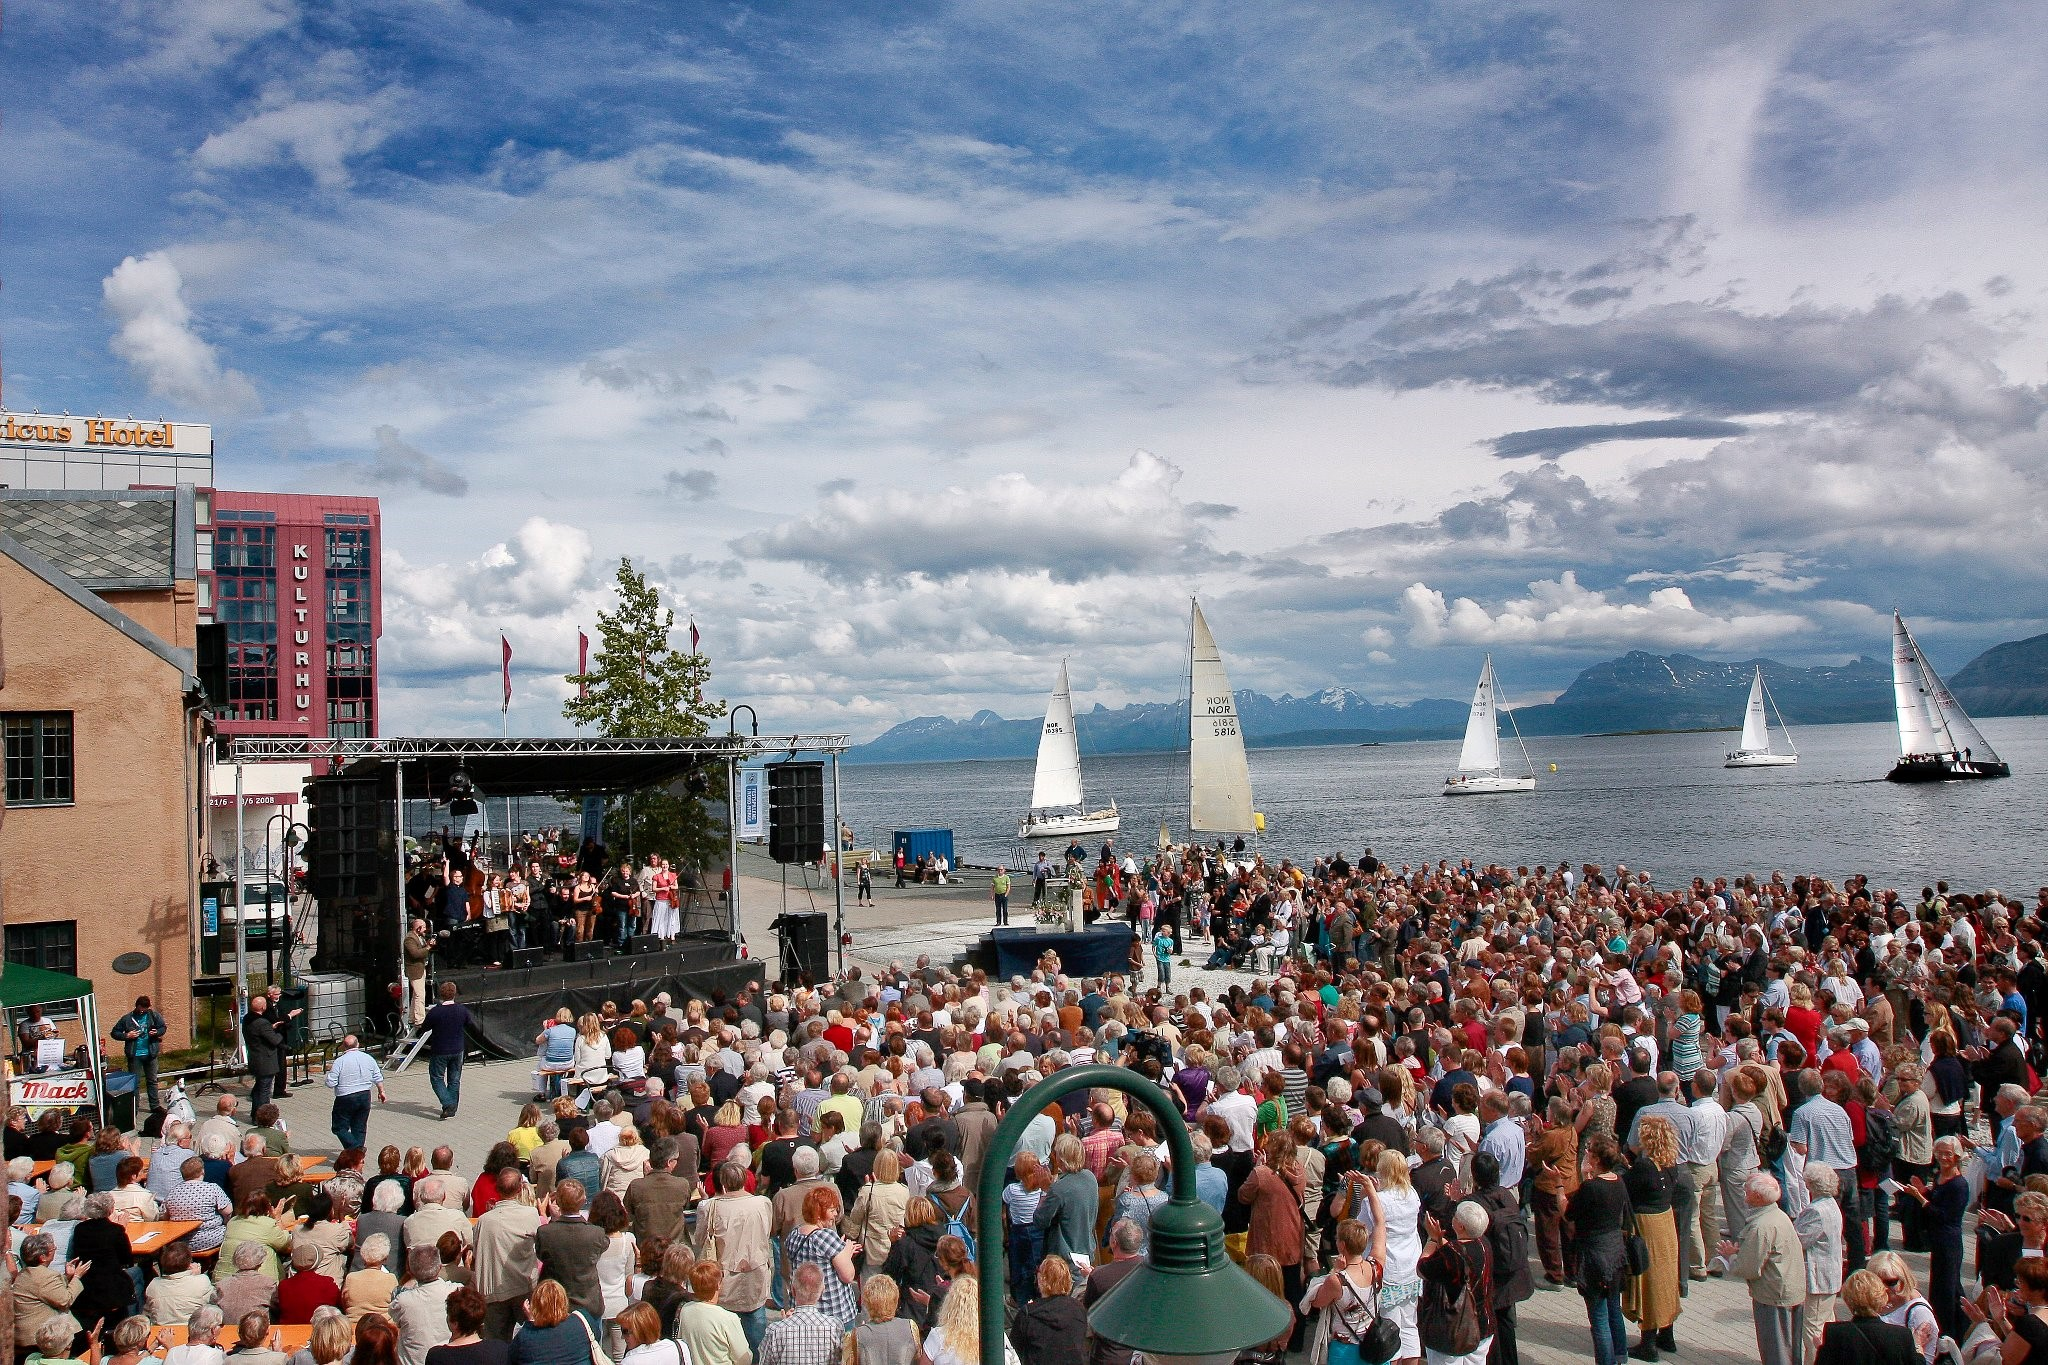 Some 30,000 people visit Harstad (pop. 25,000) for Festspillene i Nord-Norge. (Courtesy Festspillene i Nord-Norge)